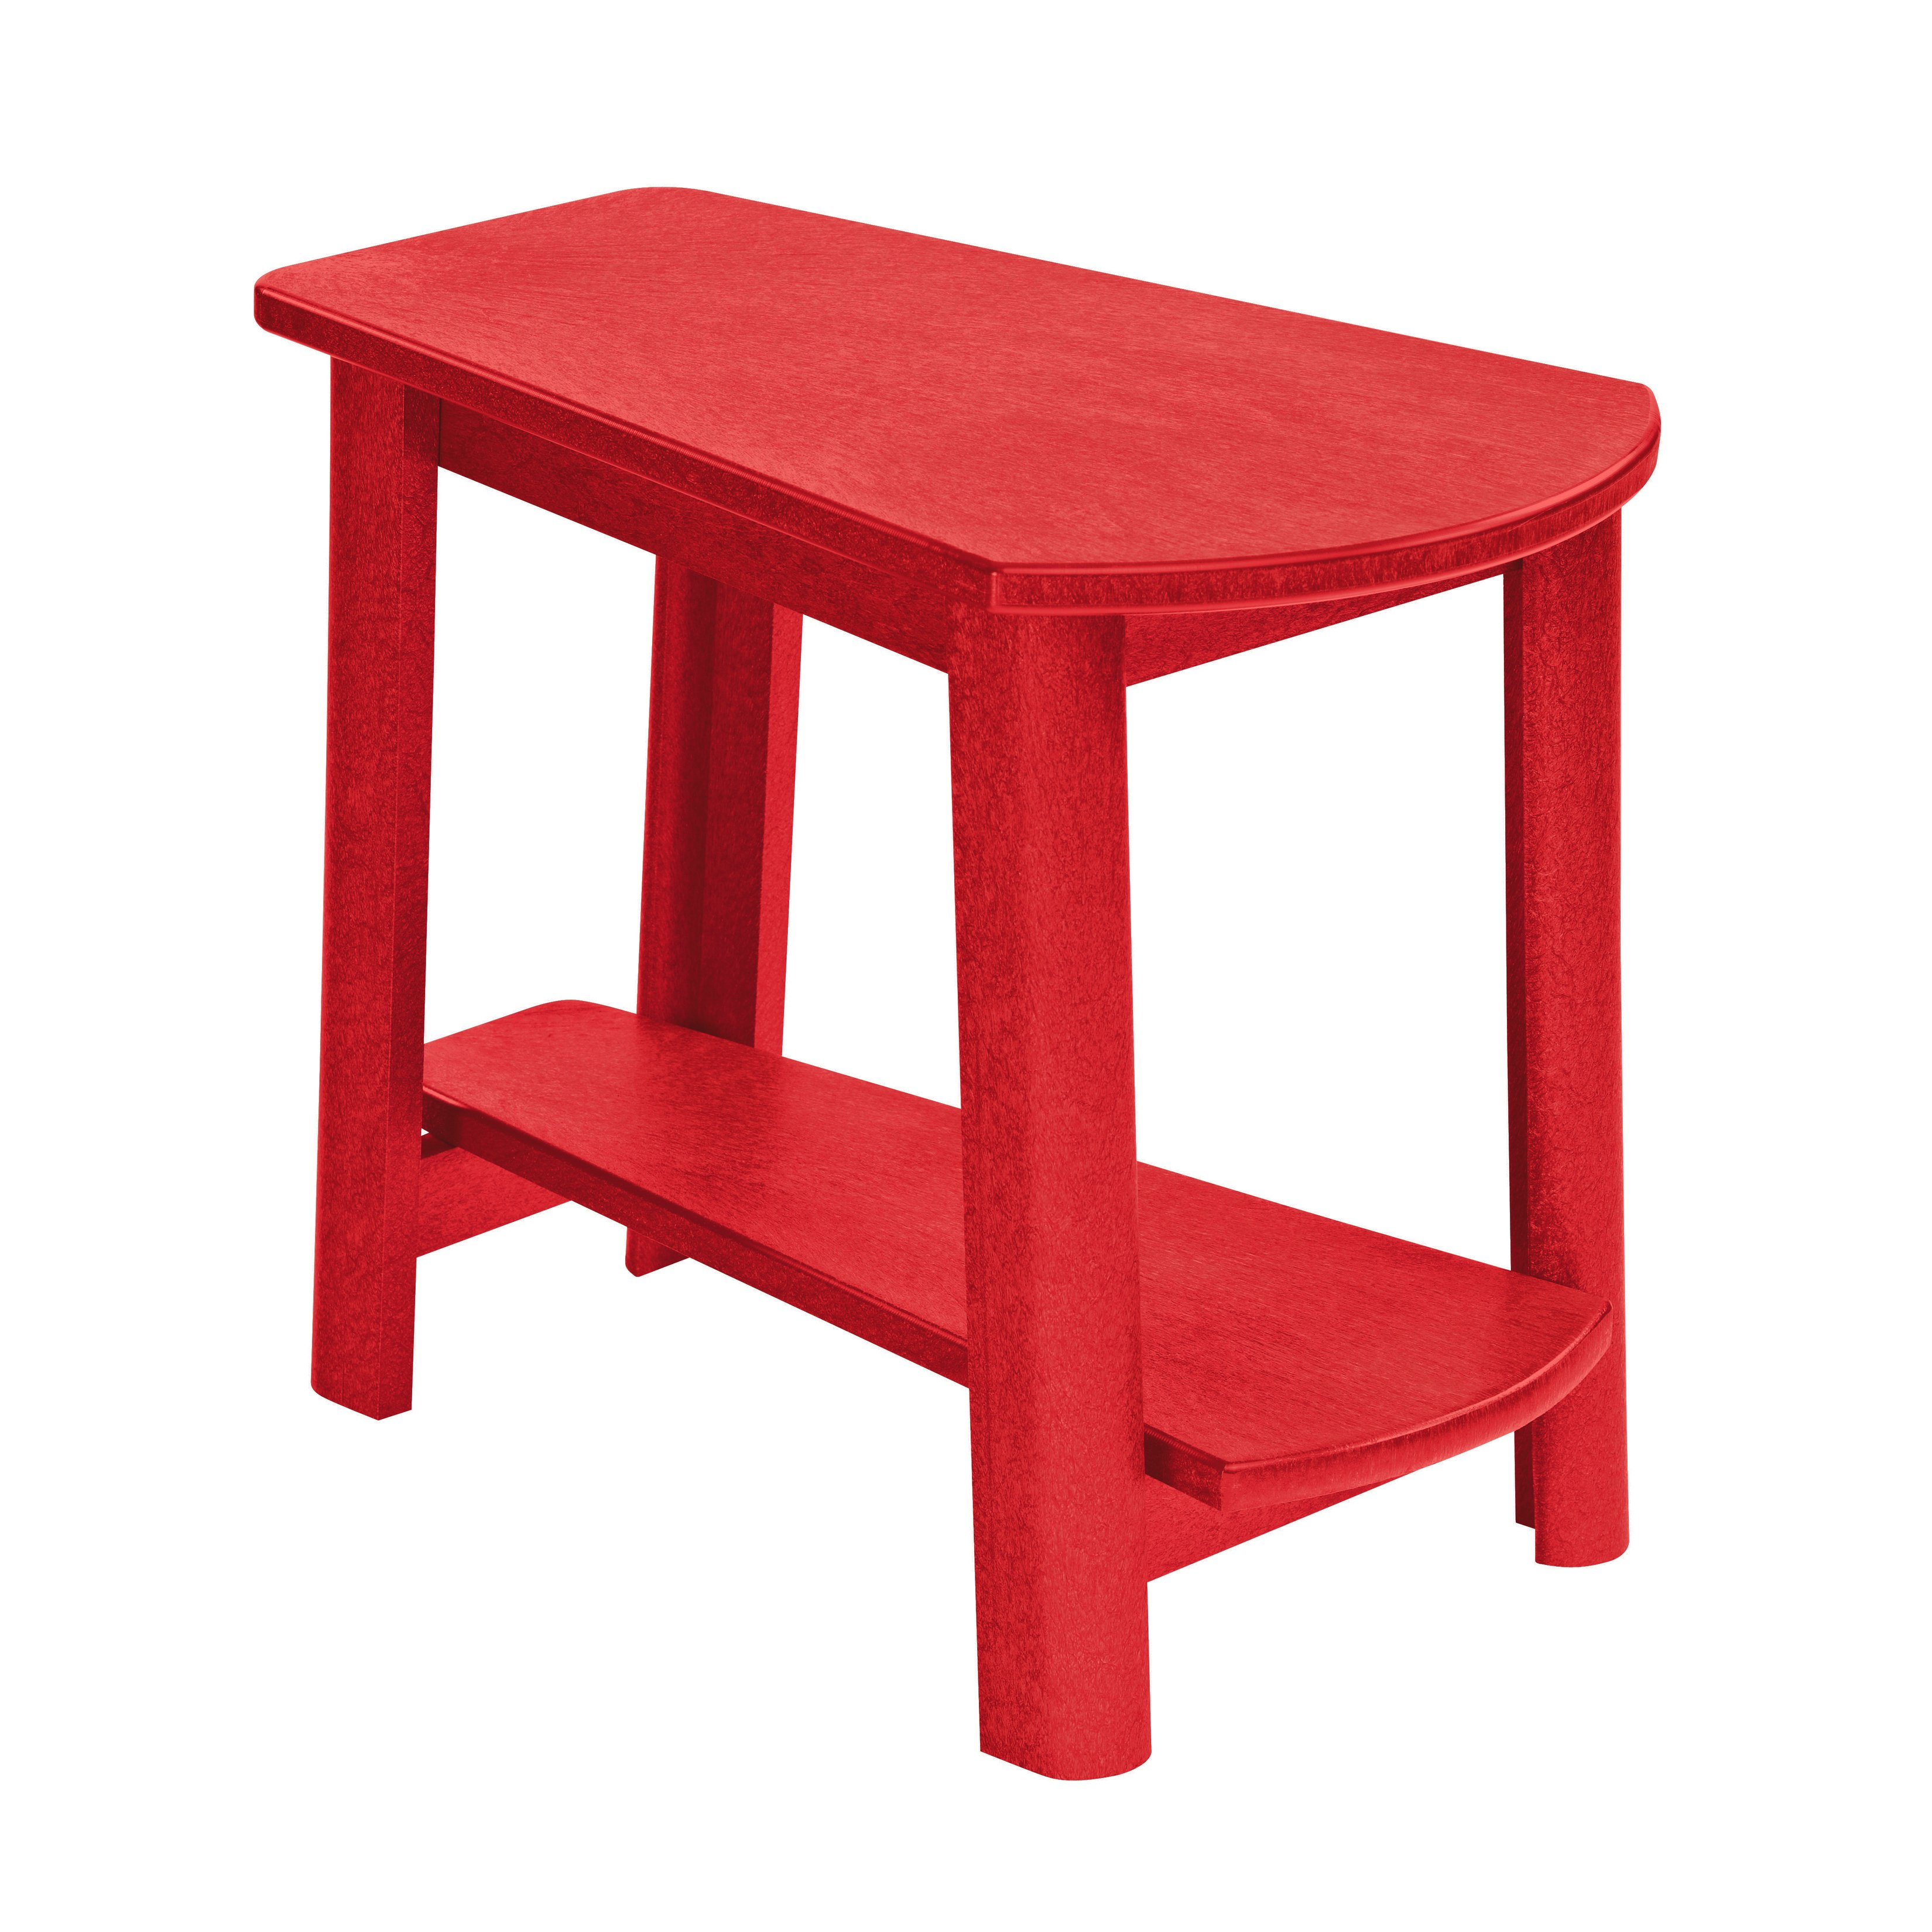 generations red tapered style accent table free shipping today drawer chest patio umbrella base glass coffee and end sets outdoor weights deep cabinet pottery barn kitchen target